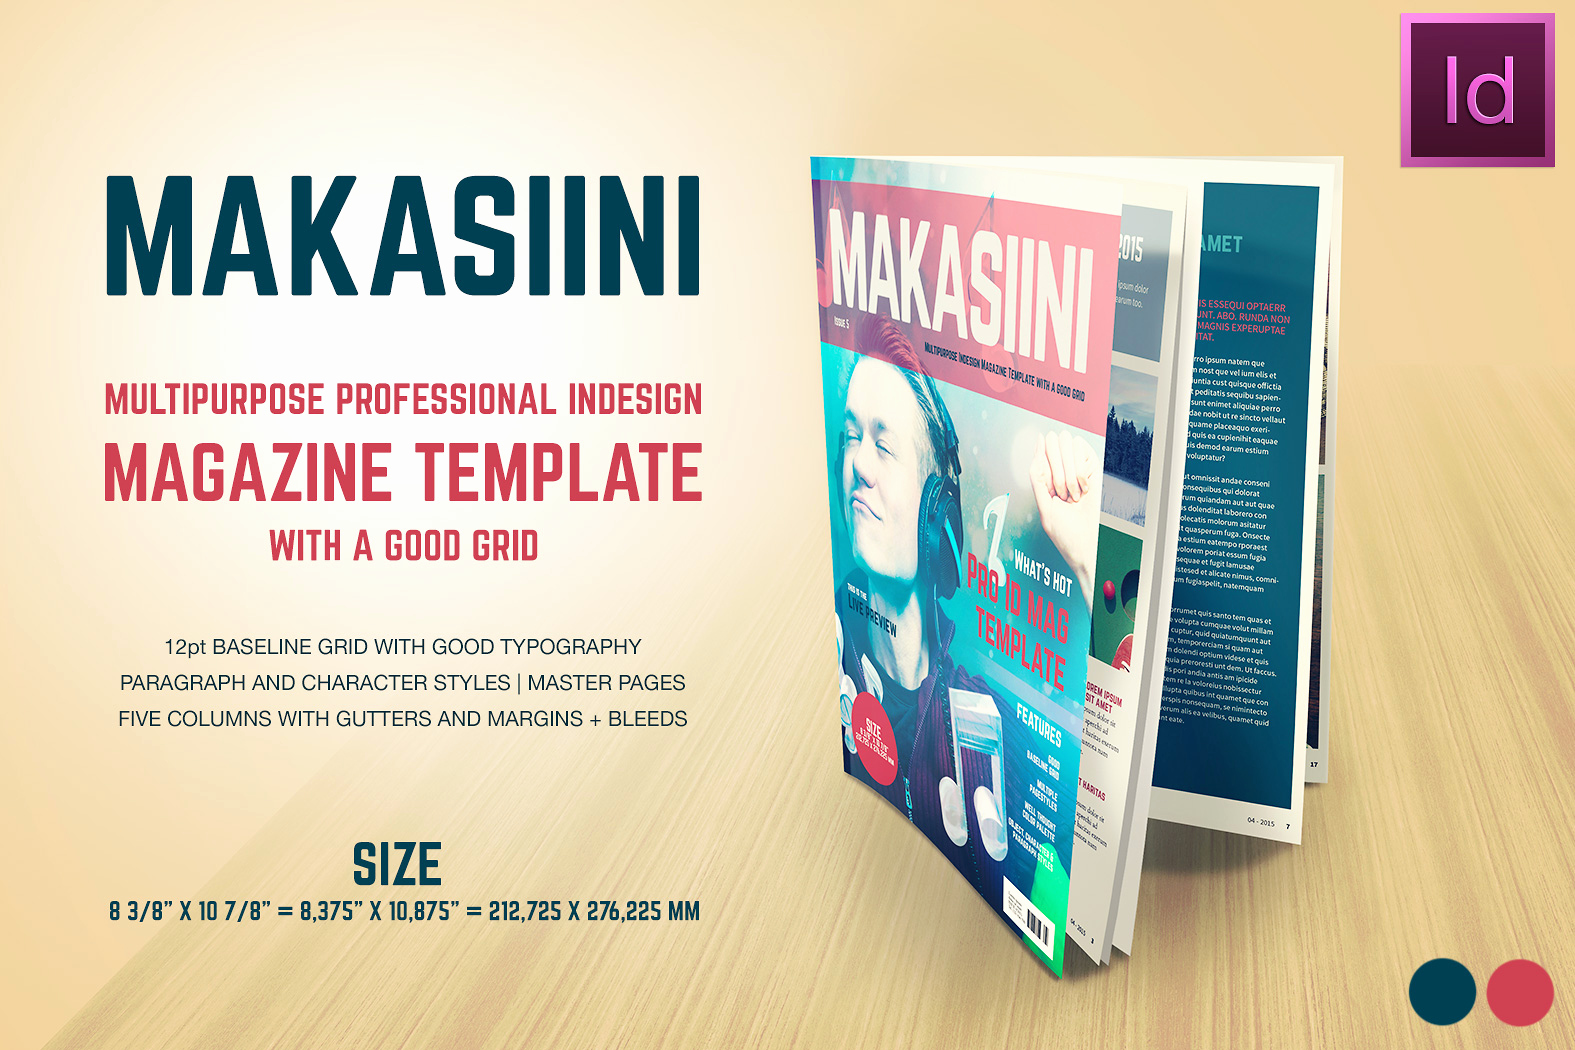 Free Indesign Magazine Templates Lovely Makasiini Indesign Mag Template Magazine Templates On